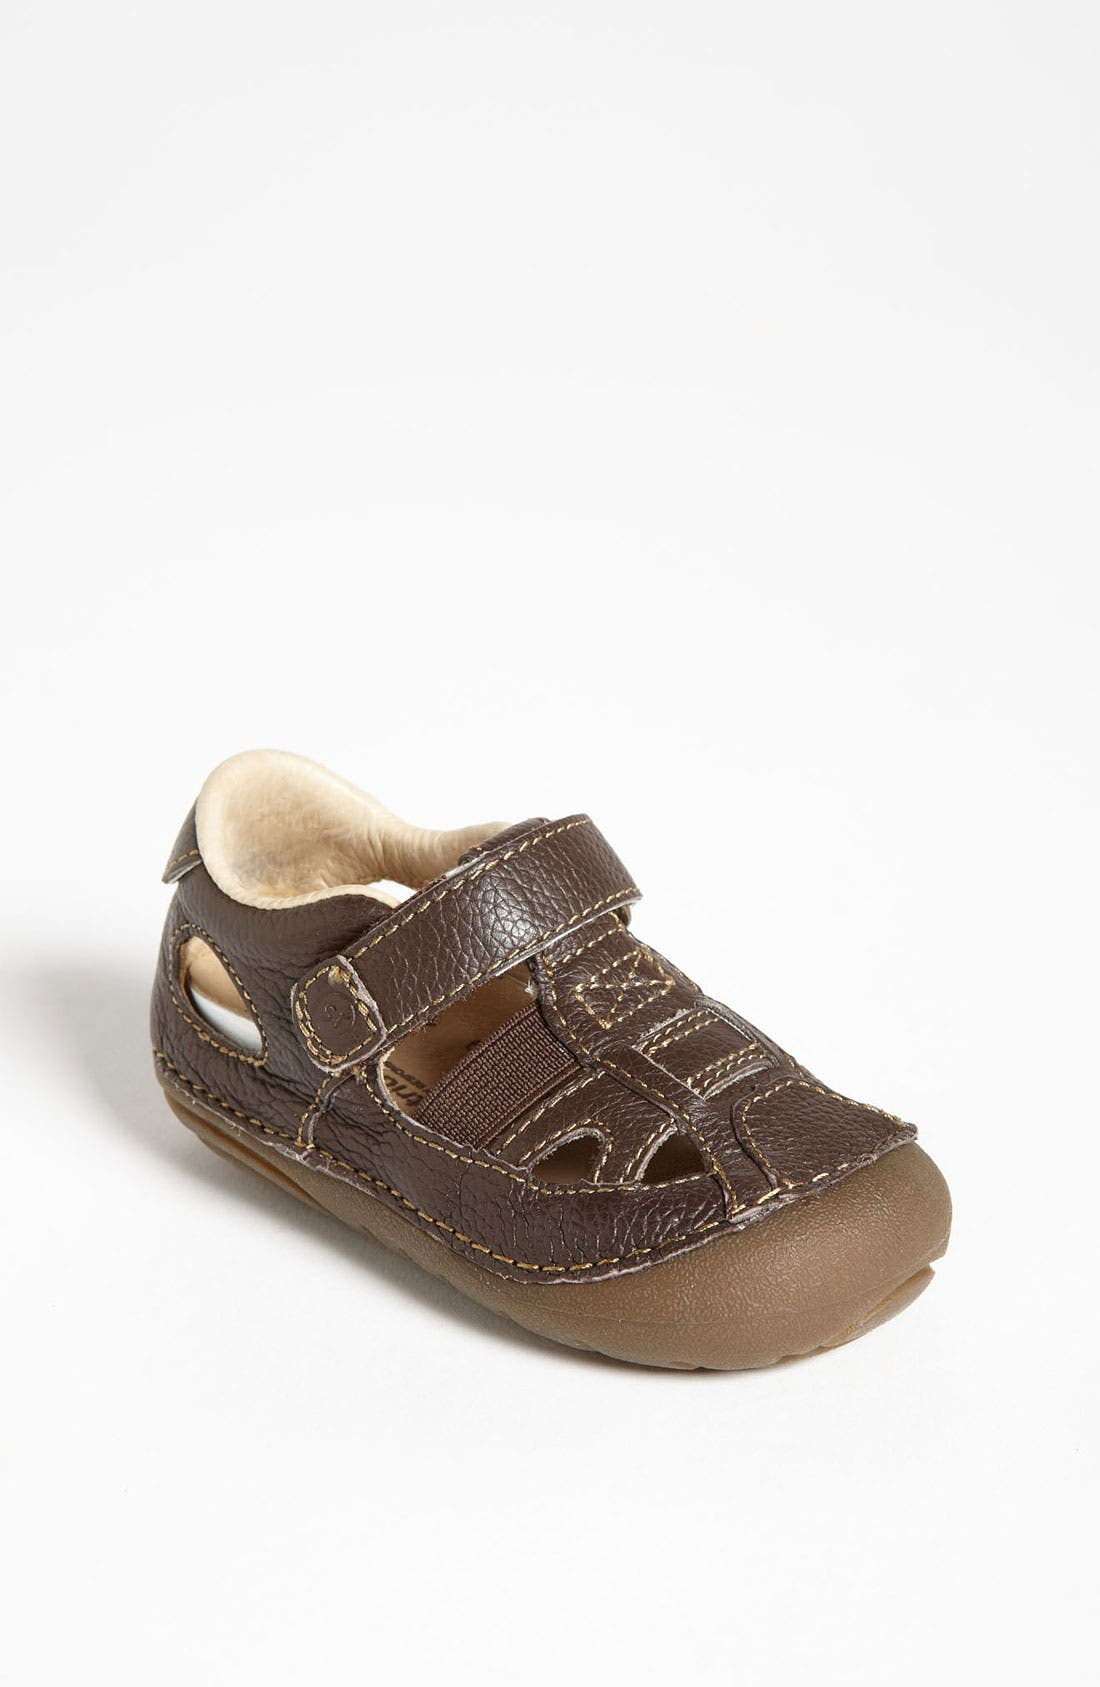 Main Image - Stride Rite 'Tony' Sandal (Baby & Walker)